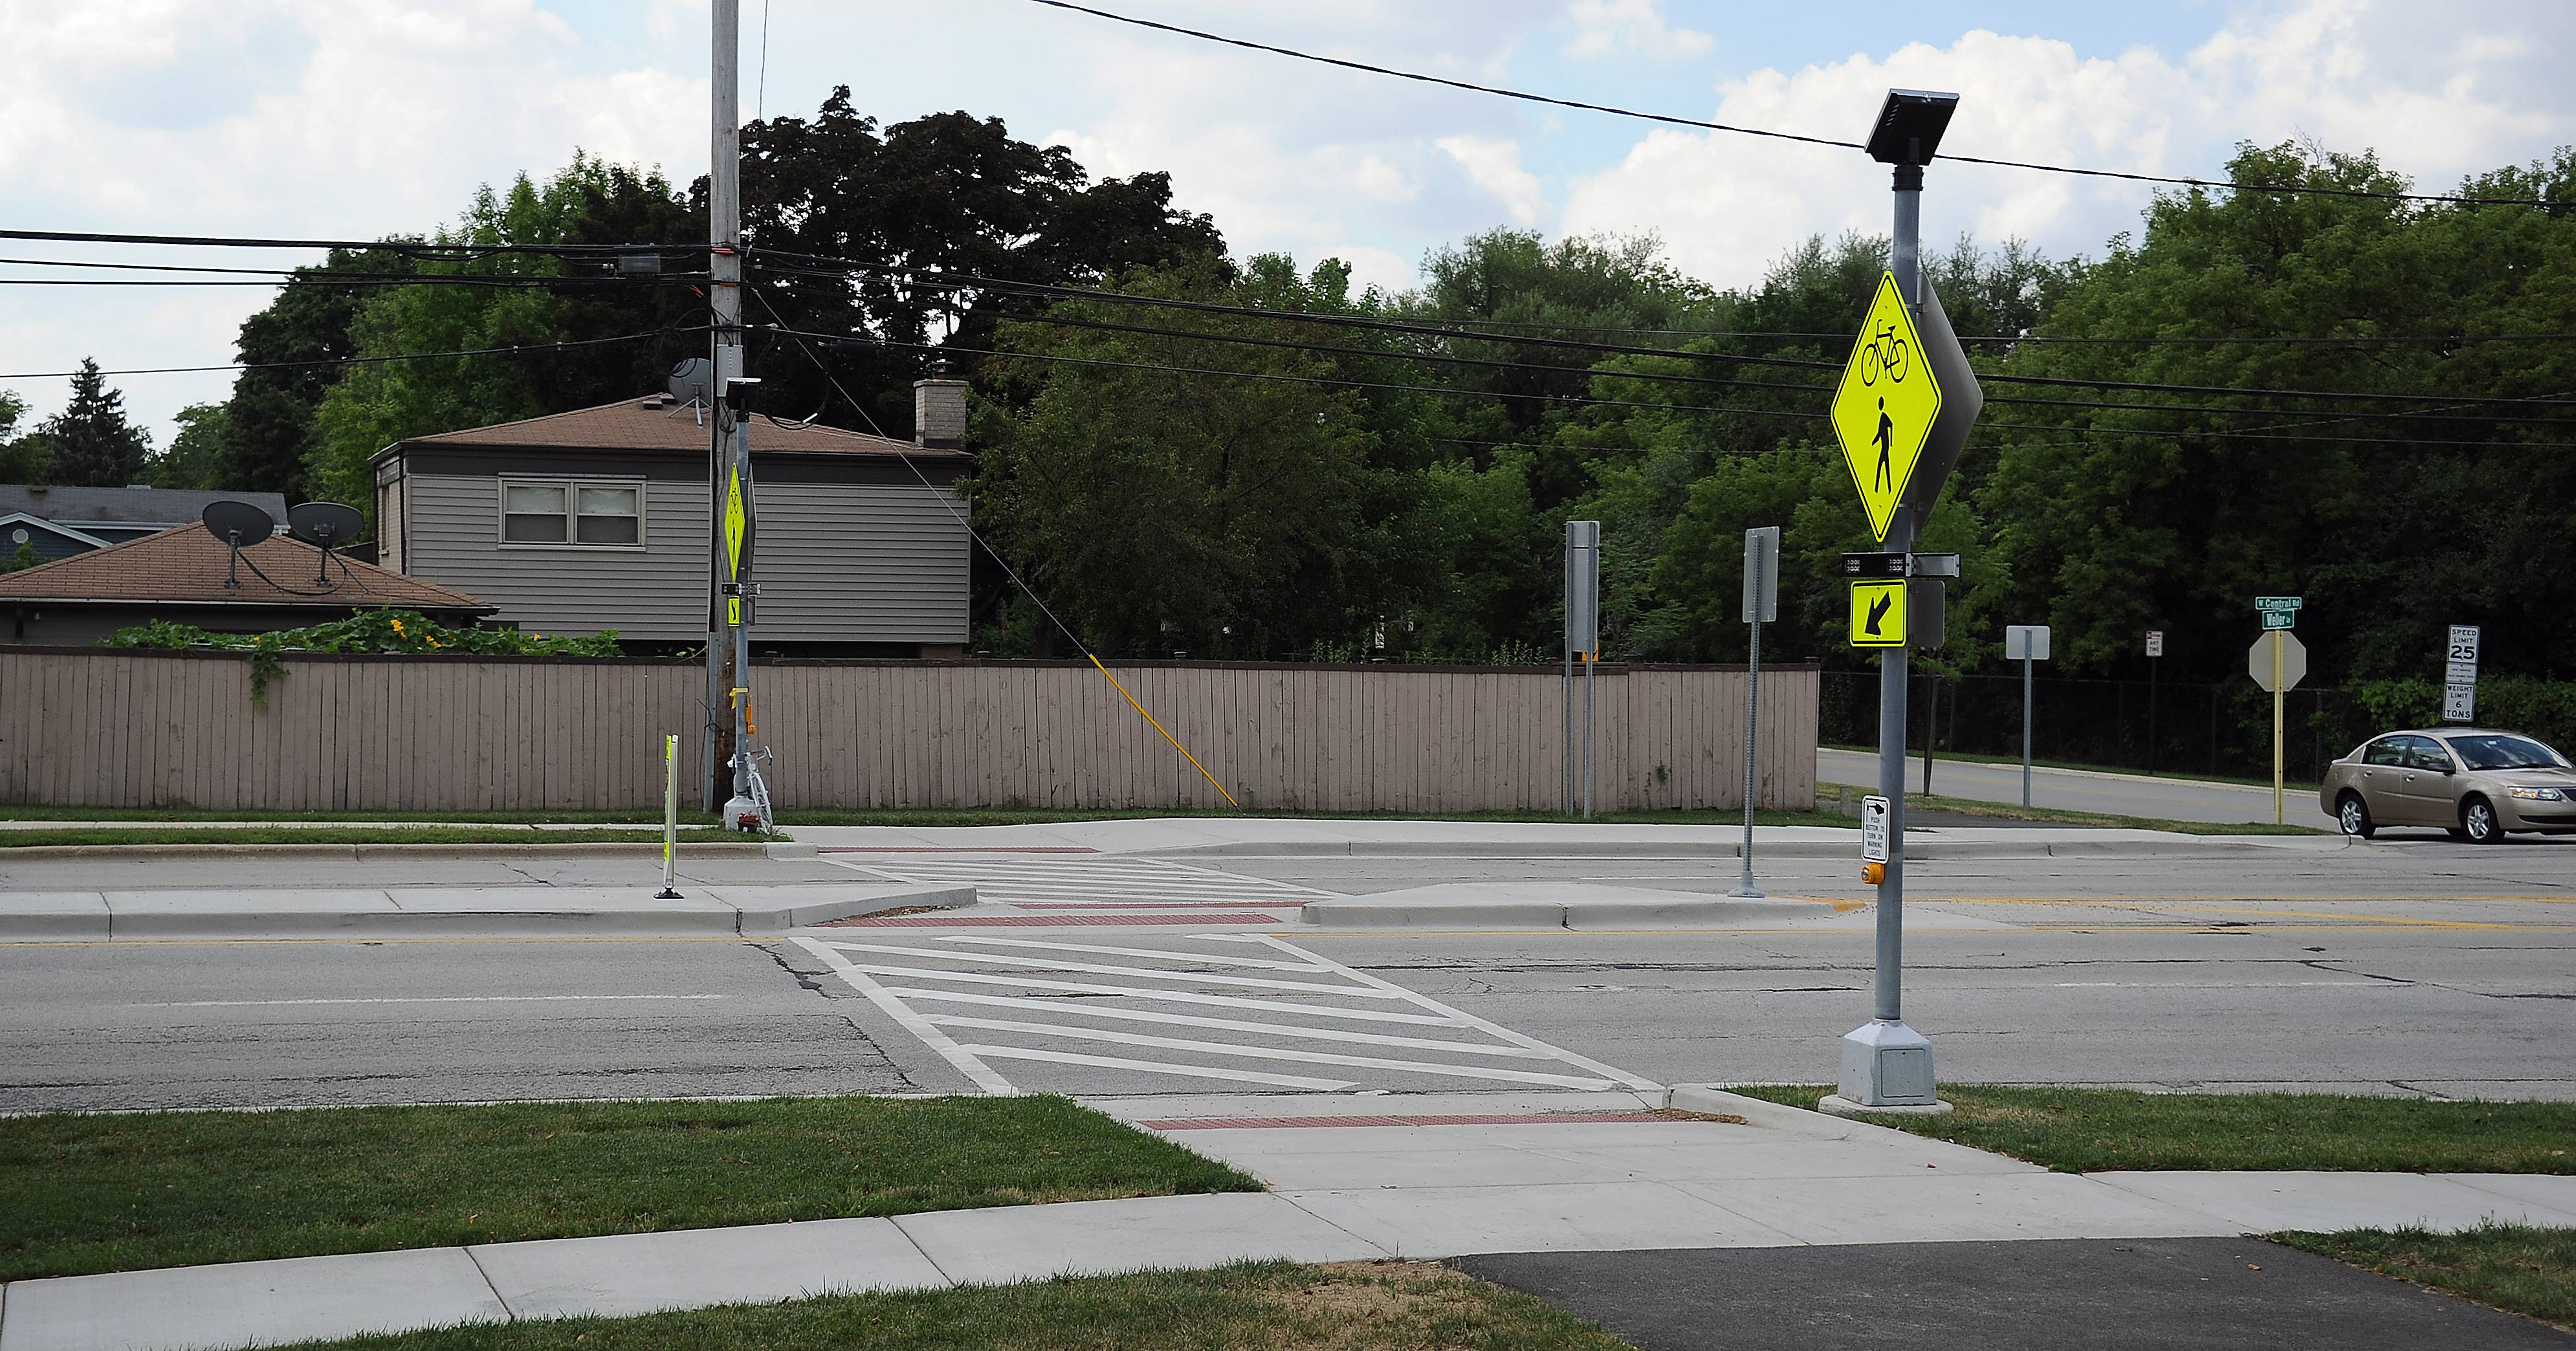 A crosswalk with a flashing yellow beacon on Central Avenue near Melas Park in Mount Prospect has caused controversy over the efficacy of the new signal.